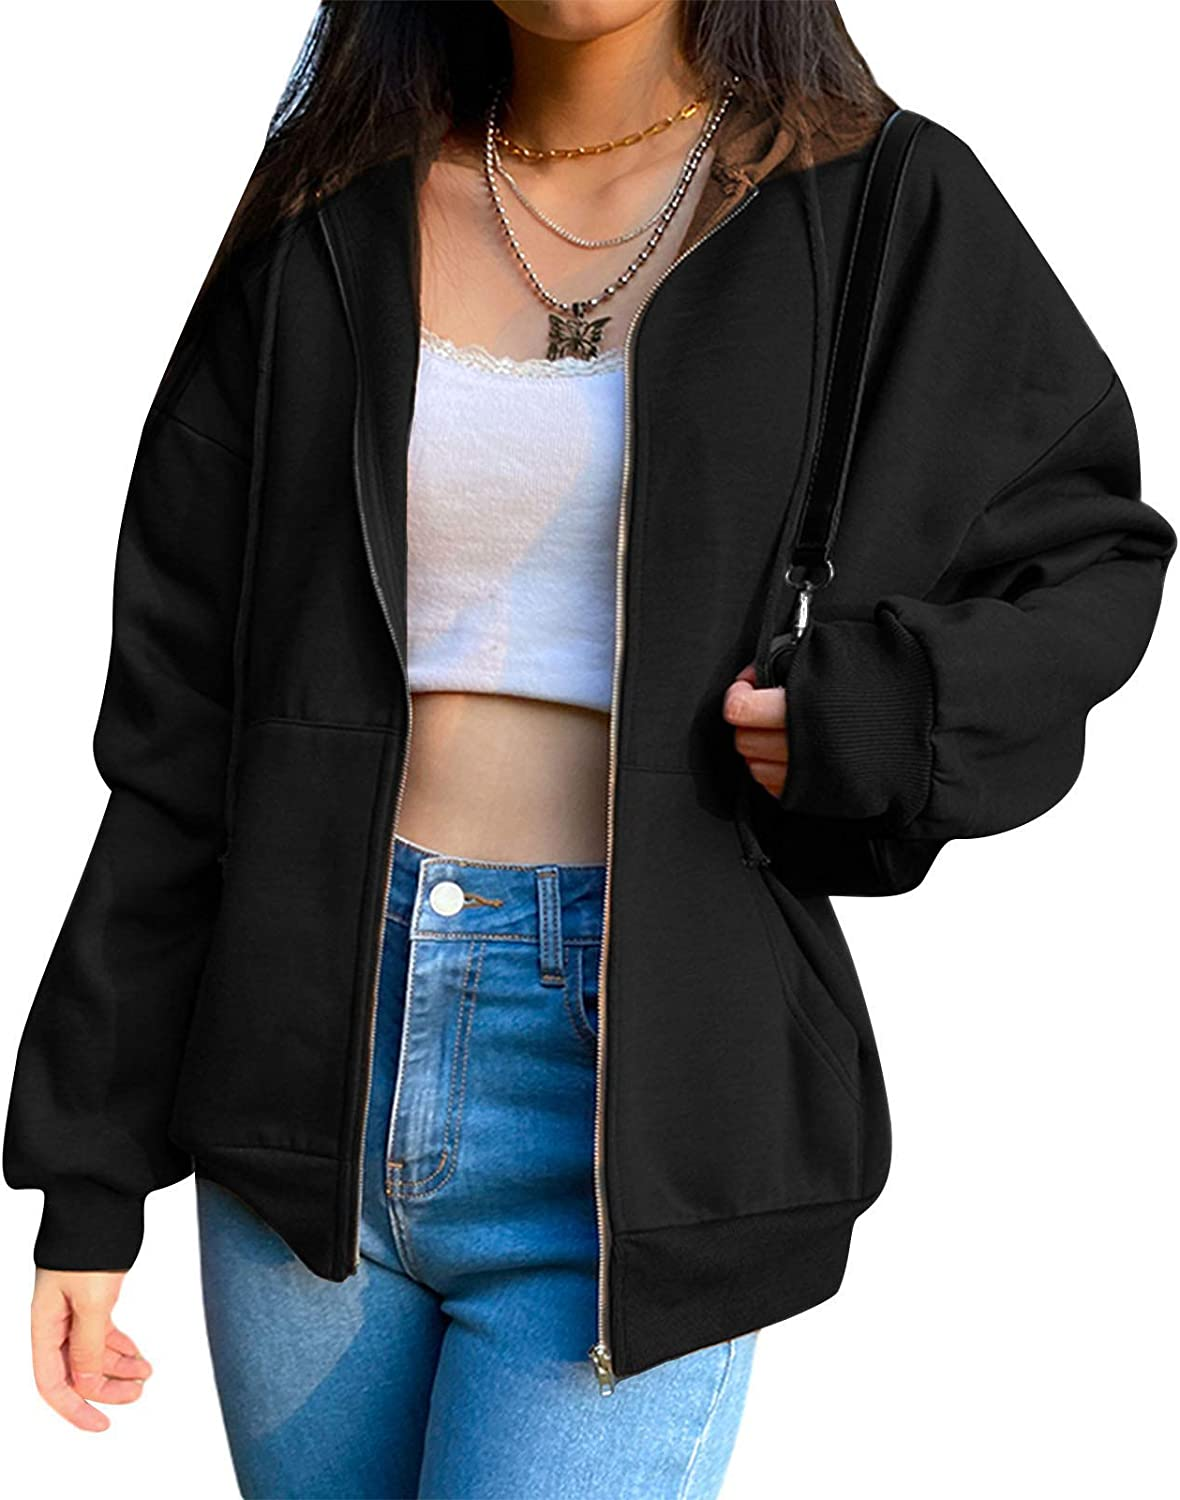 Ranking TOP5 Women Free Shipping Cheap Bargain Gift Vintage 90s Solid Zipper Oversized Front Long Sleeve Brown